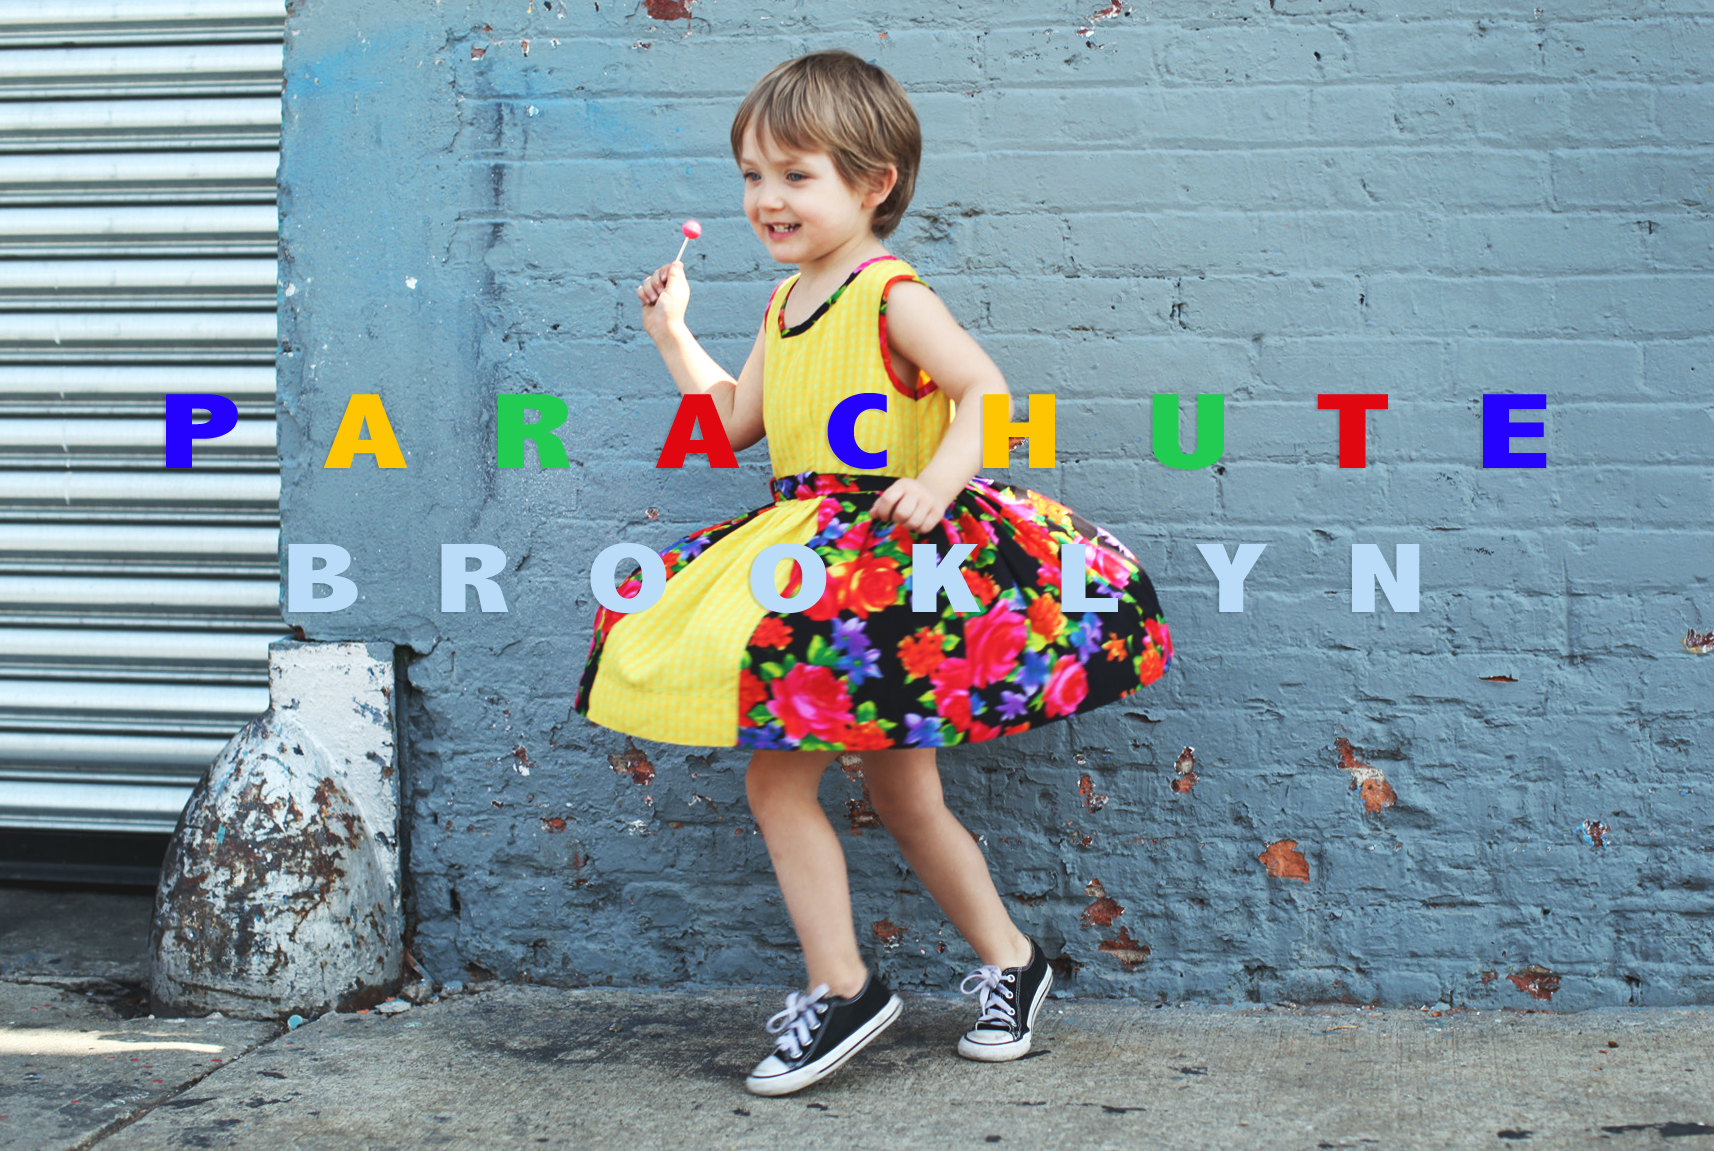 Parachute Brooklyn Launchs Online Exchange Store for Kids